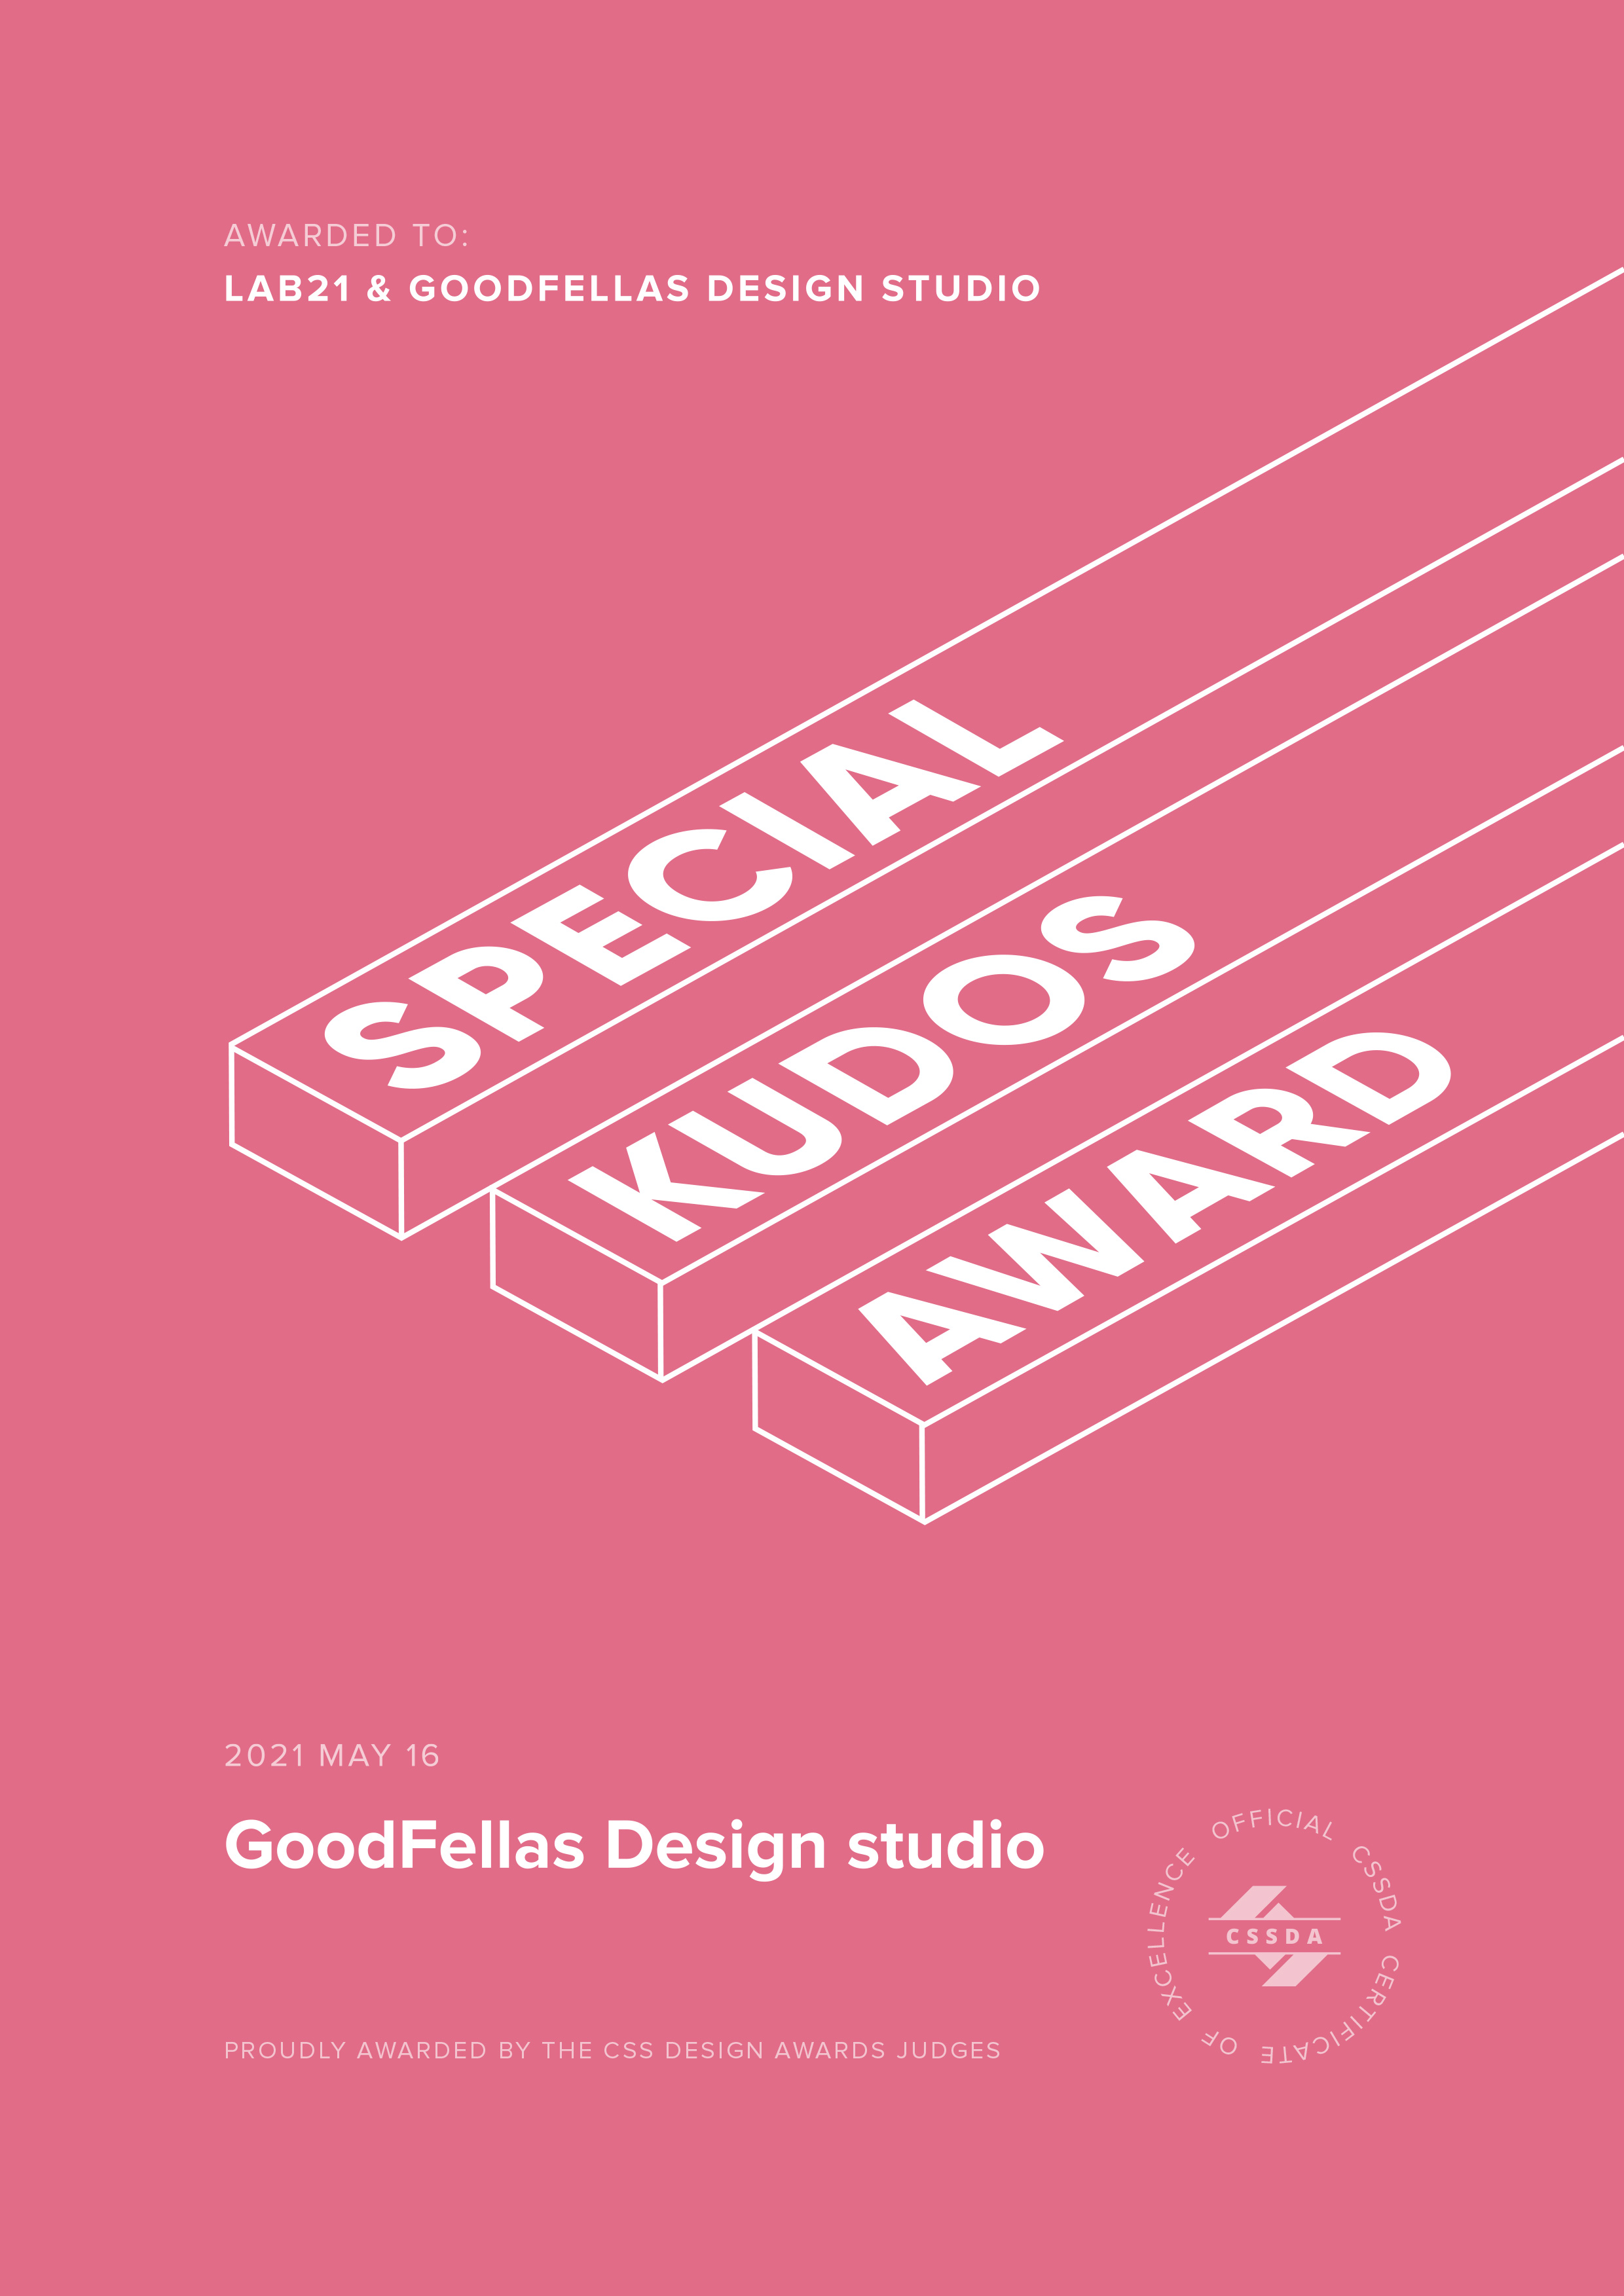 Special Kudos Award by CSS Design Awards  to Lab21 for the GoodFellas website